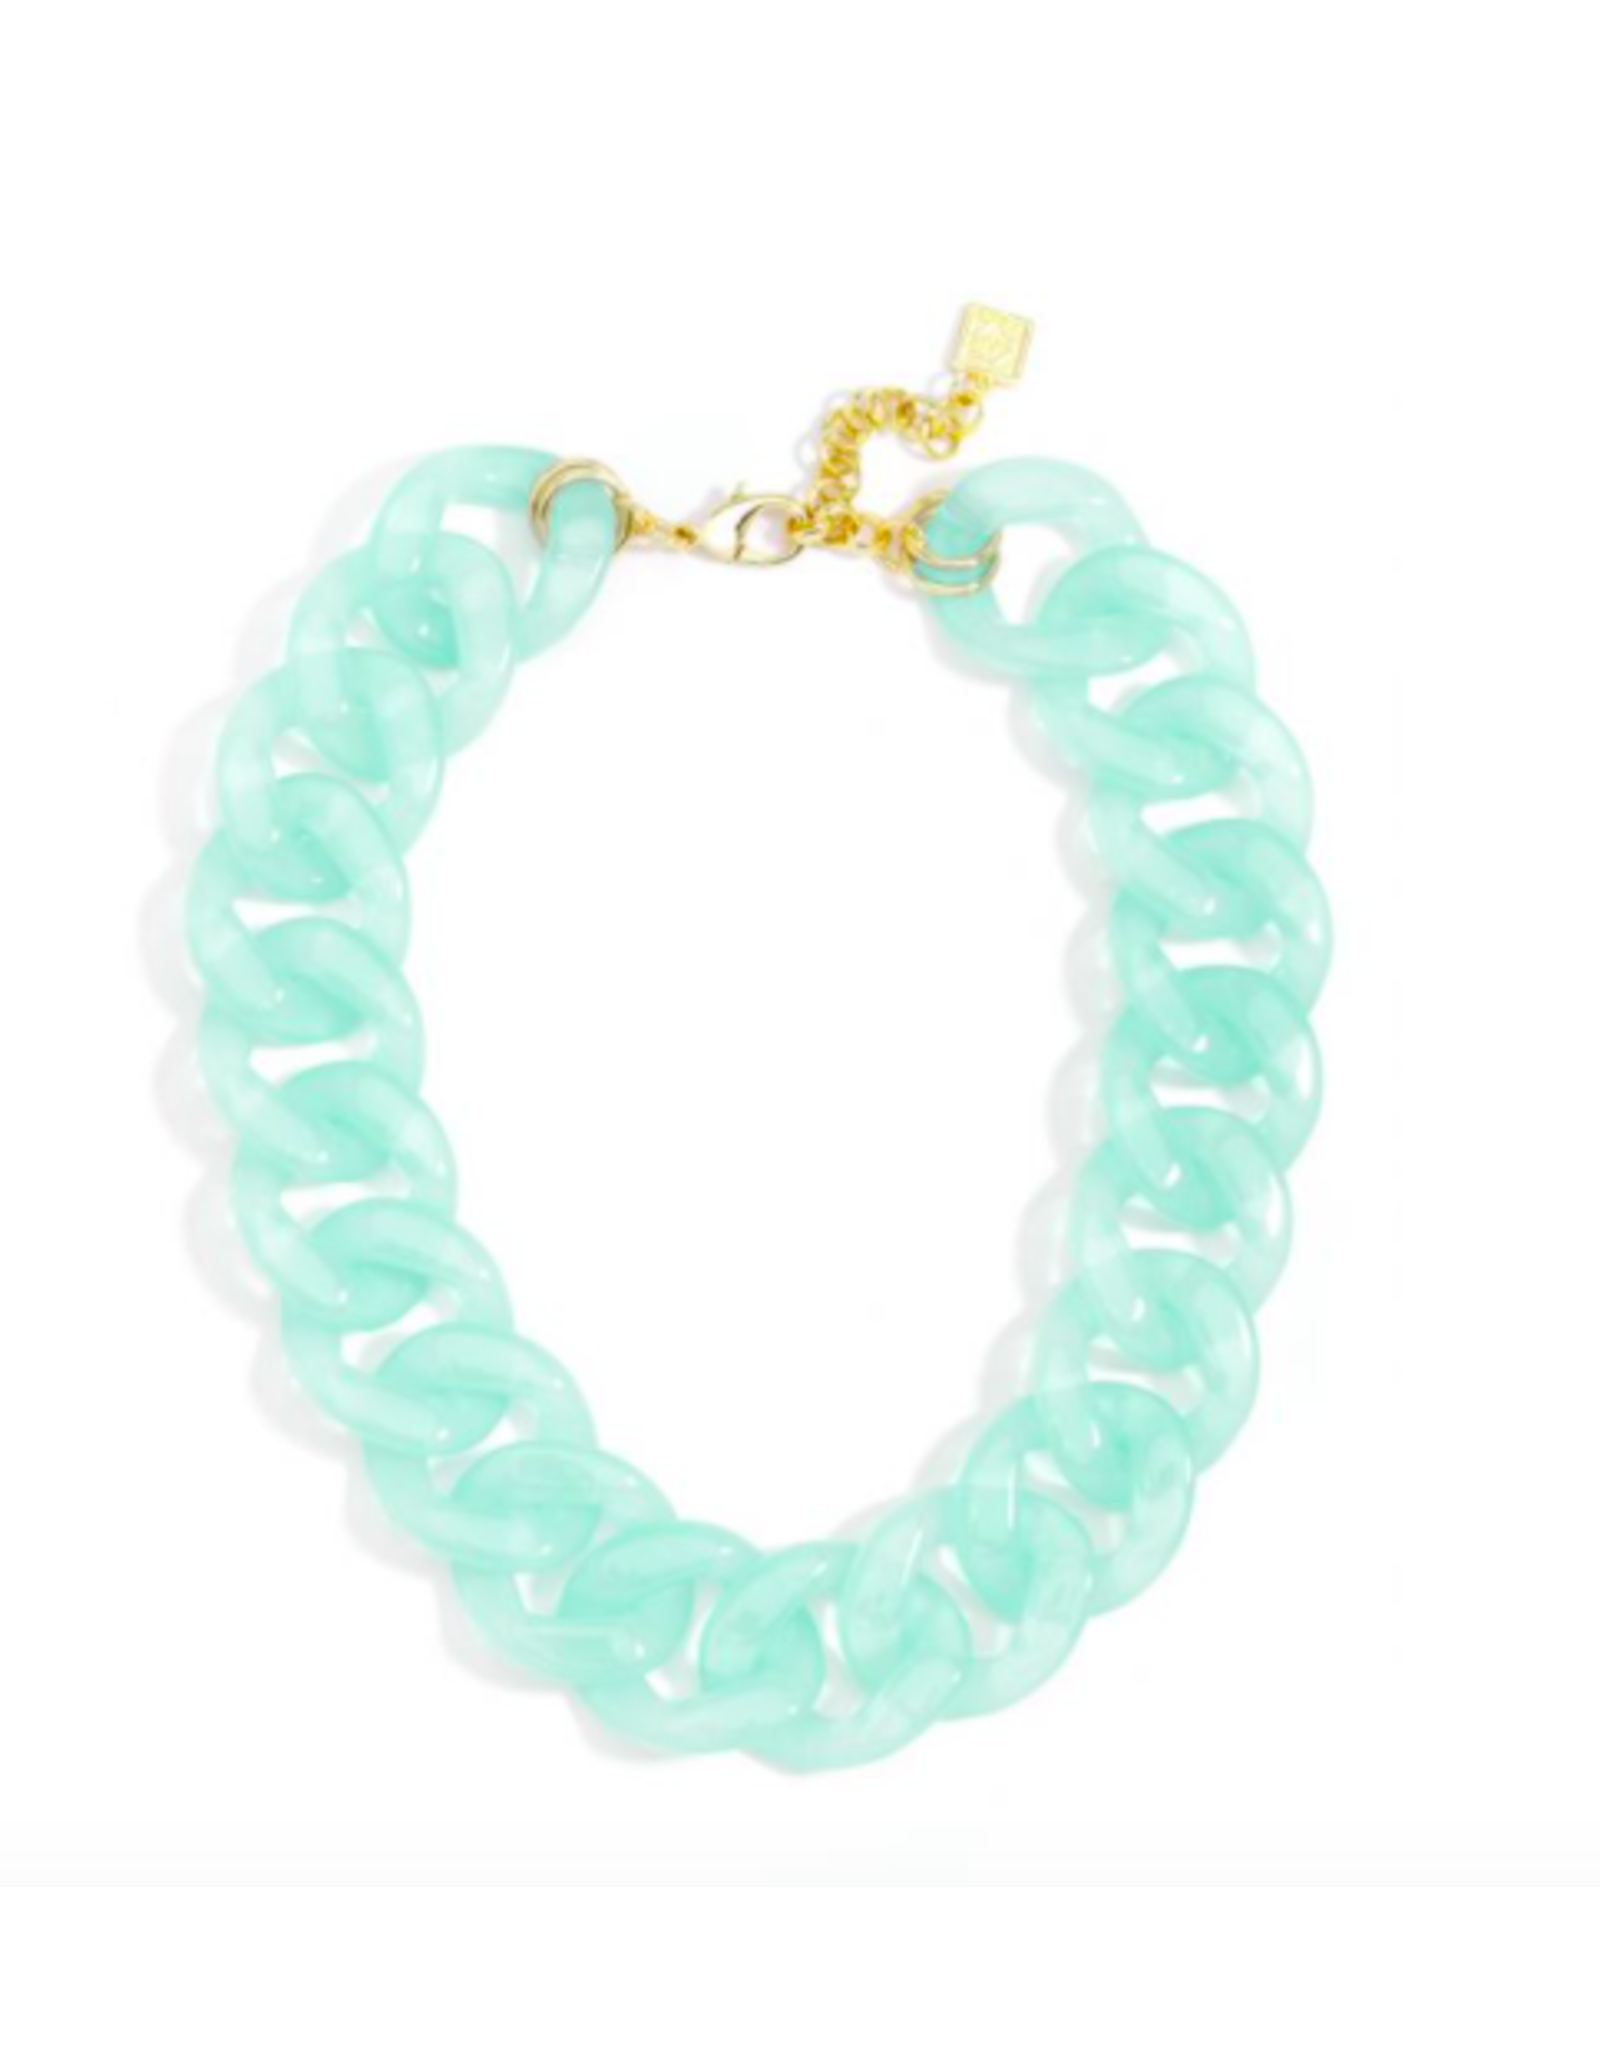 Zenzii Lucite Links Necklace in Mint